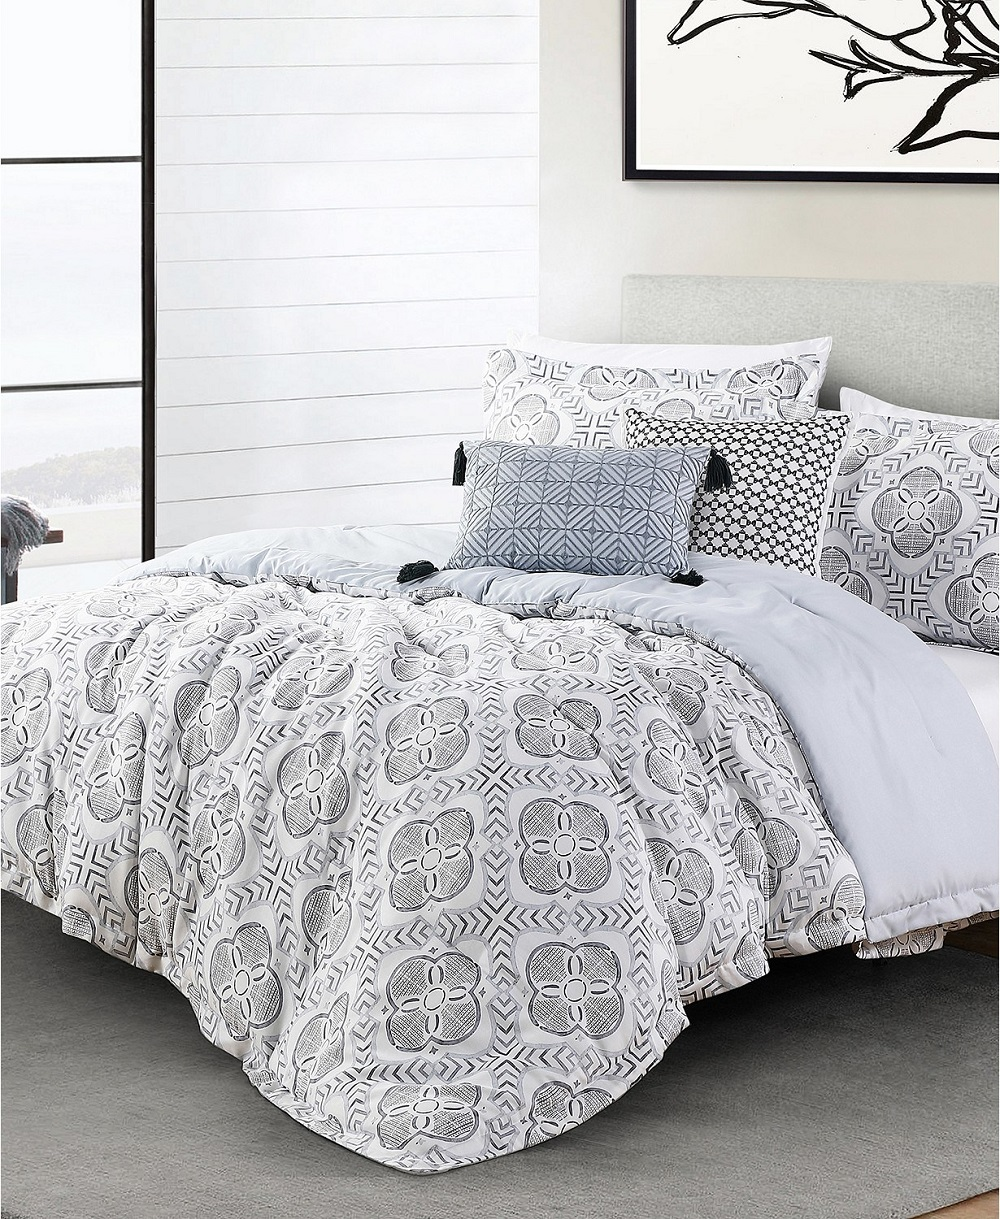 Women's fashion brand Anne Klein has launched a new home collection at Macys.com and its flagship website AnneKlein.com.